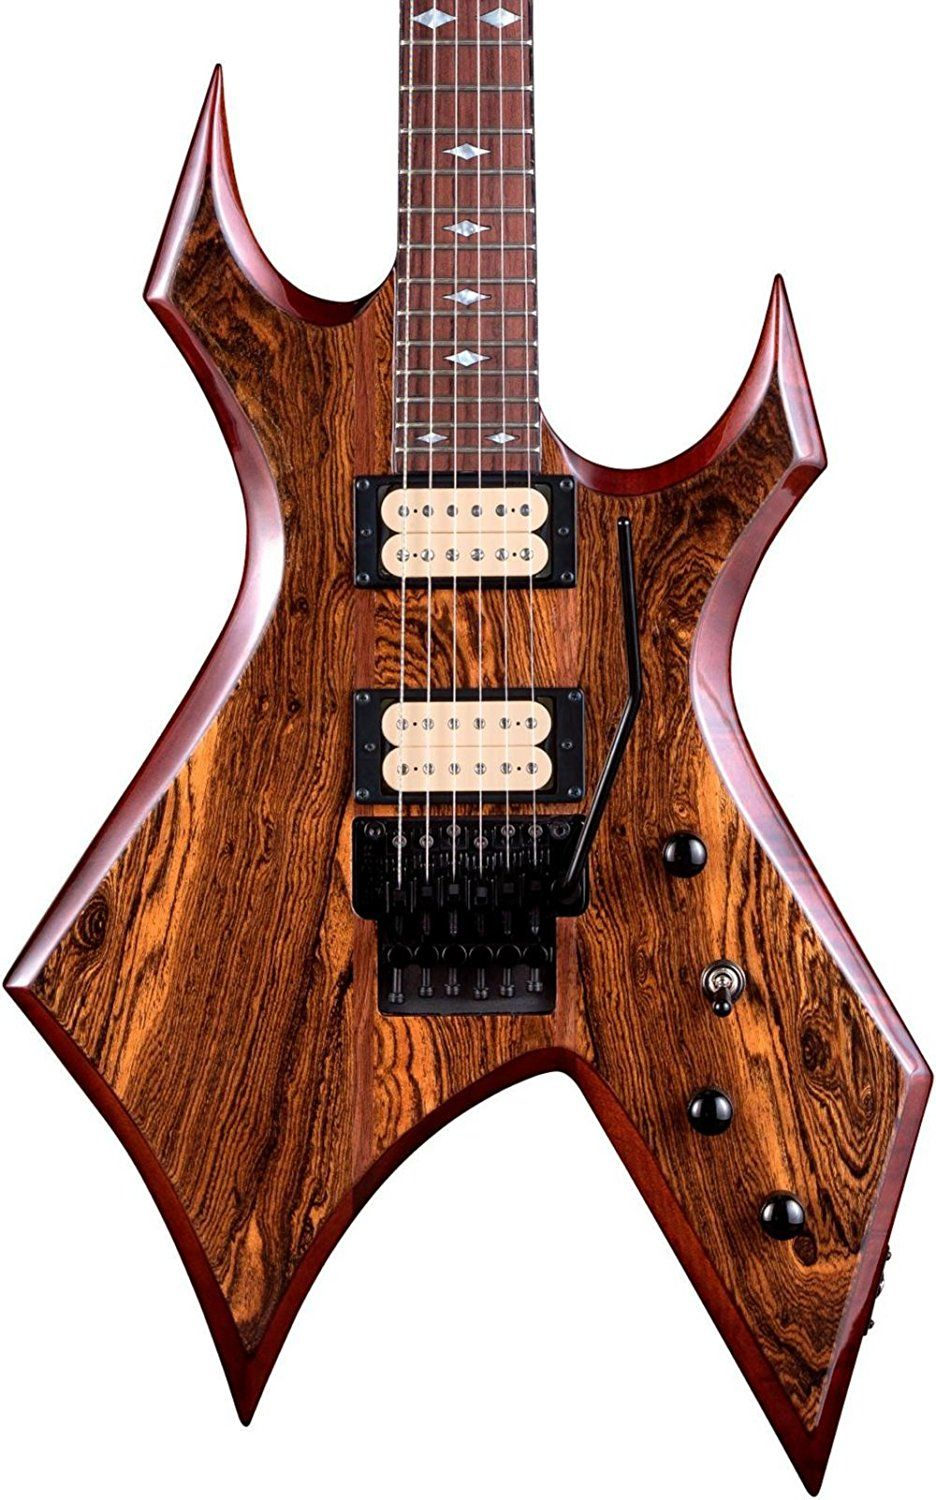 B C Rich Warlock Neck Through With Floyd Rose And Dimarzios Electric Guitar Gloss Natural By B C Rich Jsmartmusic88 Com Con Imágenes Guitarras Instrumentos Amplificador